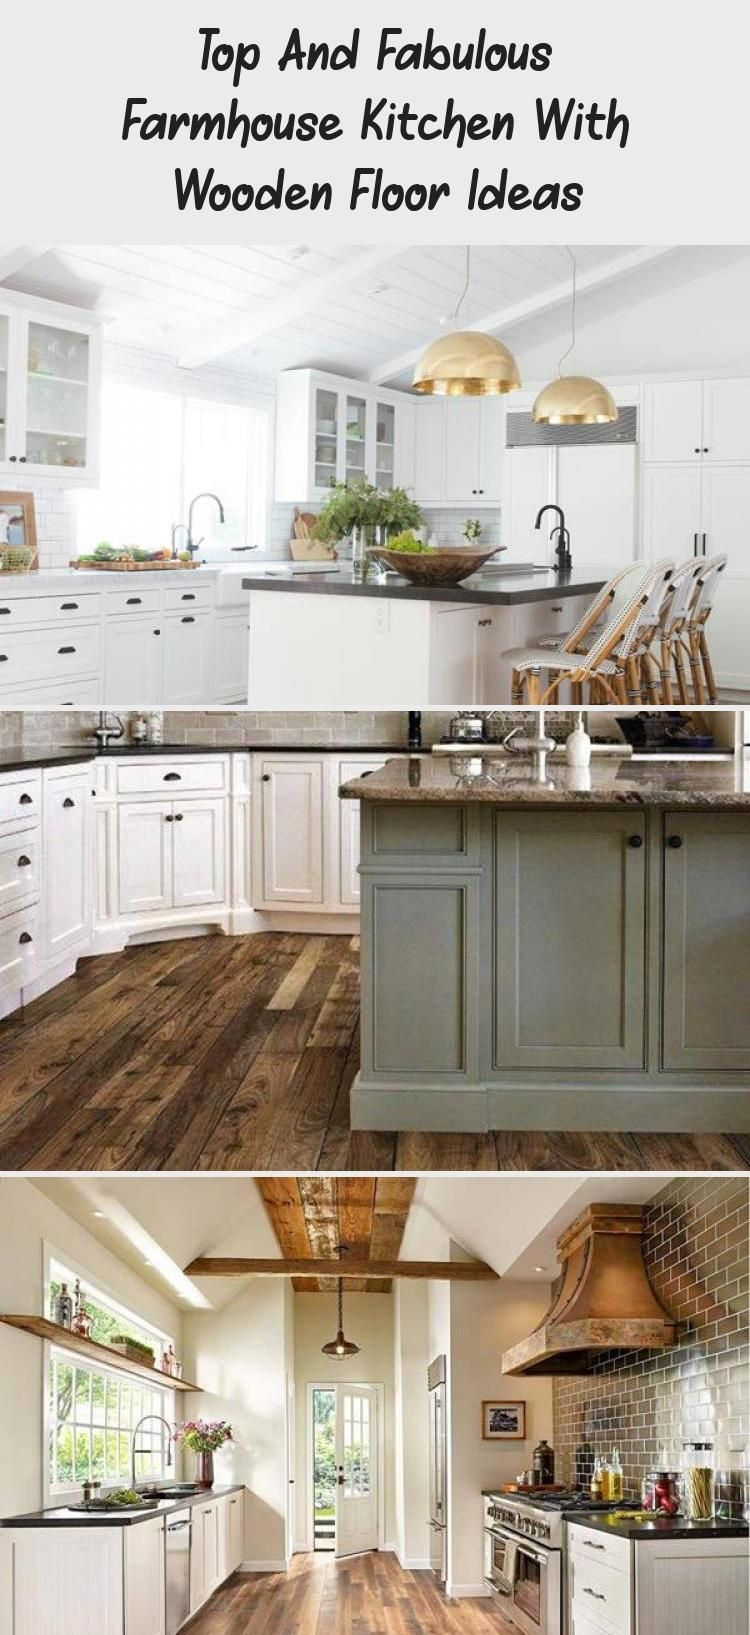 Top And Fabulous Farmhouse Kitchen With Wooden Floor Ideas – DECORATION Kitchen